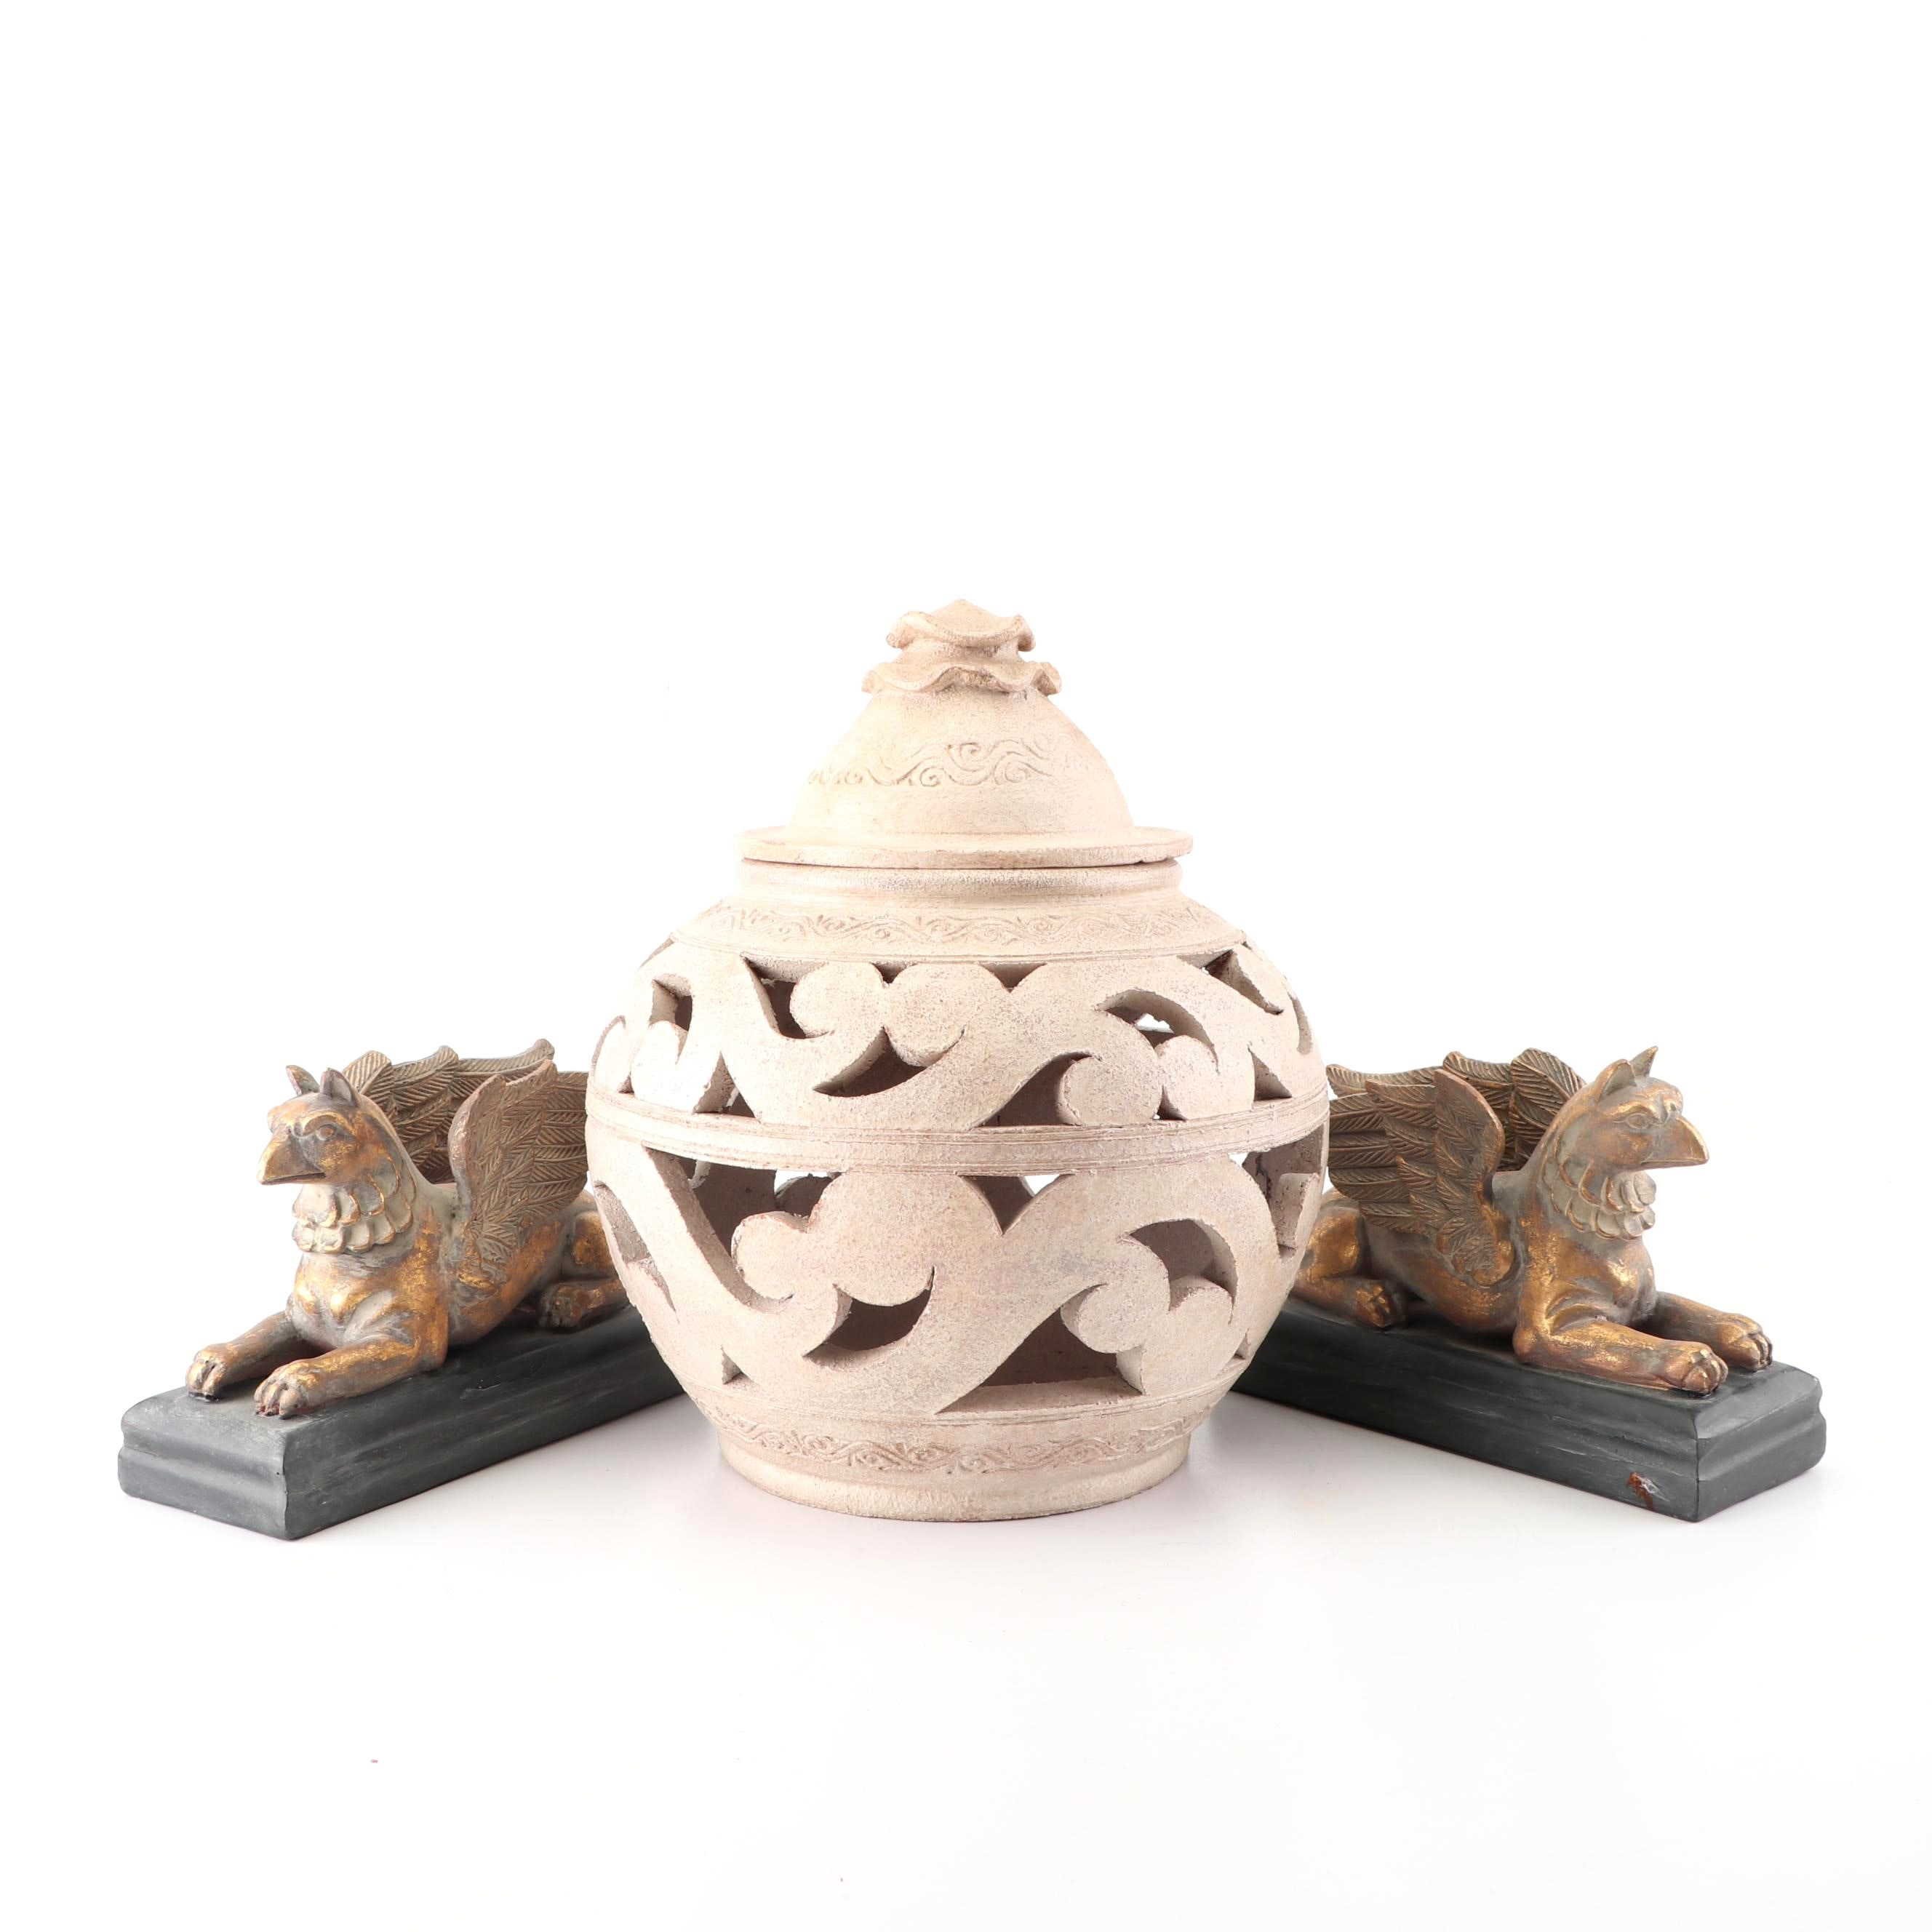 Reticulated Ceramic Jar and Griffin Figurines